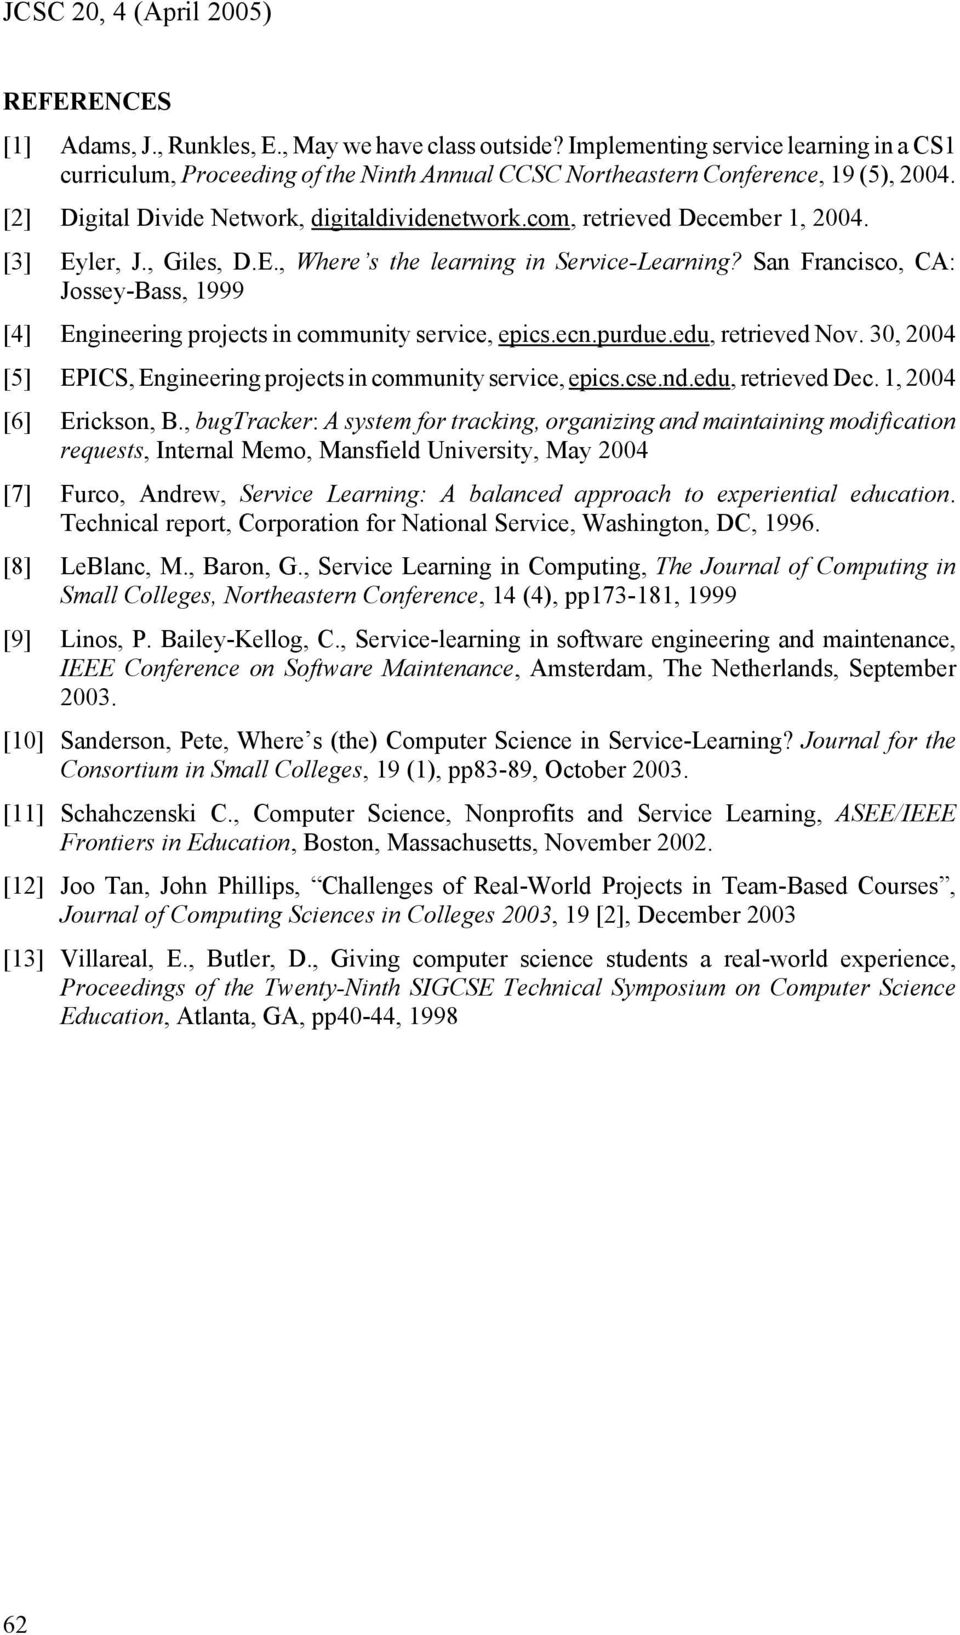 com, retrieved December 1, 2004. [3] Eyler, J., Giles, D.E., Where s the learning in Service-Learning? San Francisco, CA: Jossey-Bass, 1999 [4] Engineering projects in community service, epics.ecn.